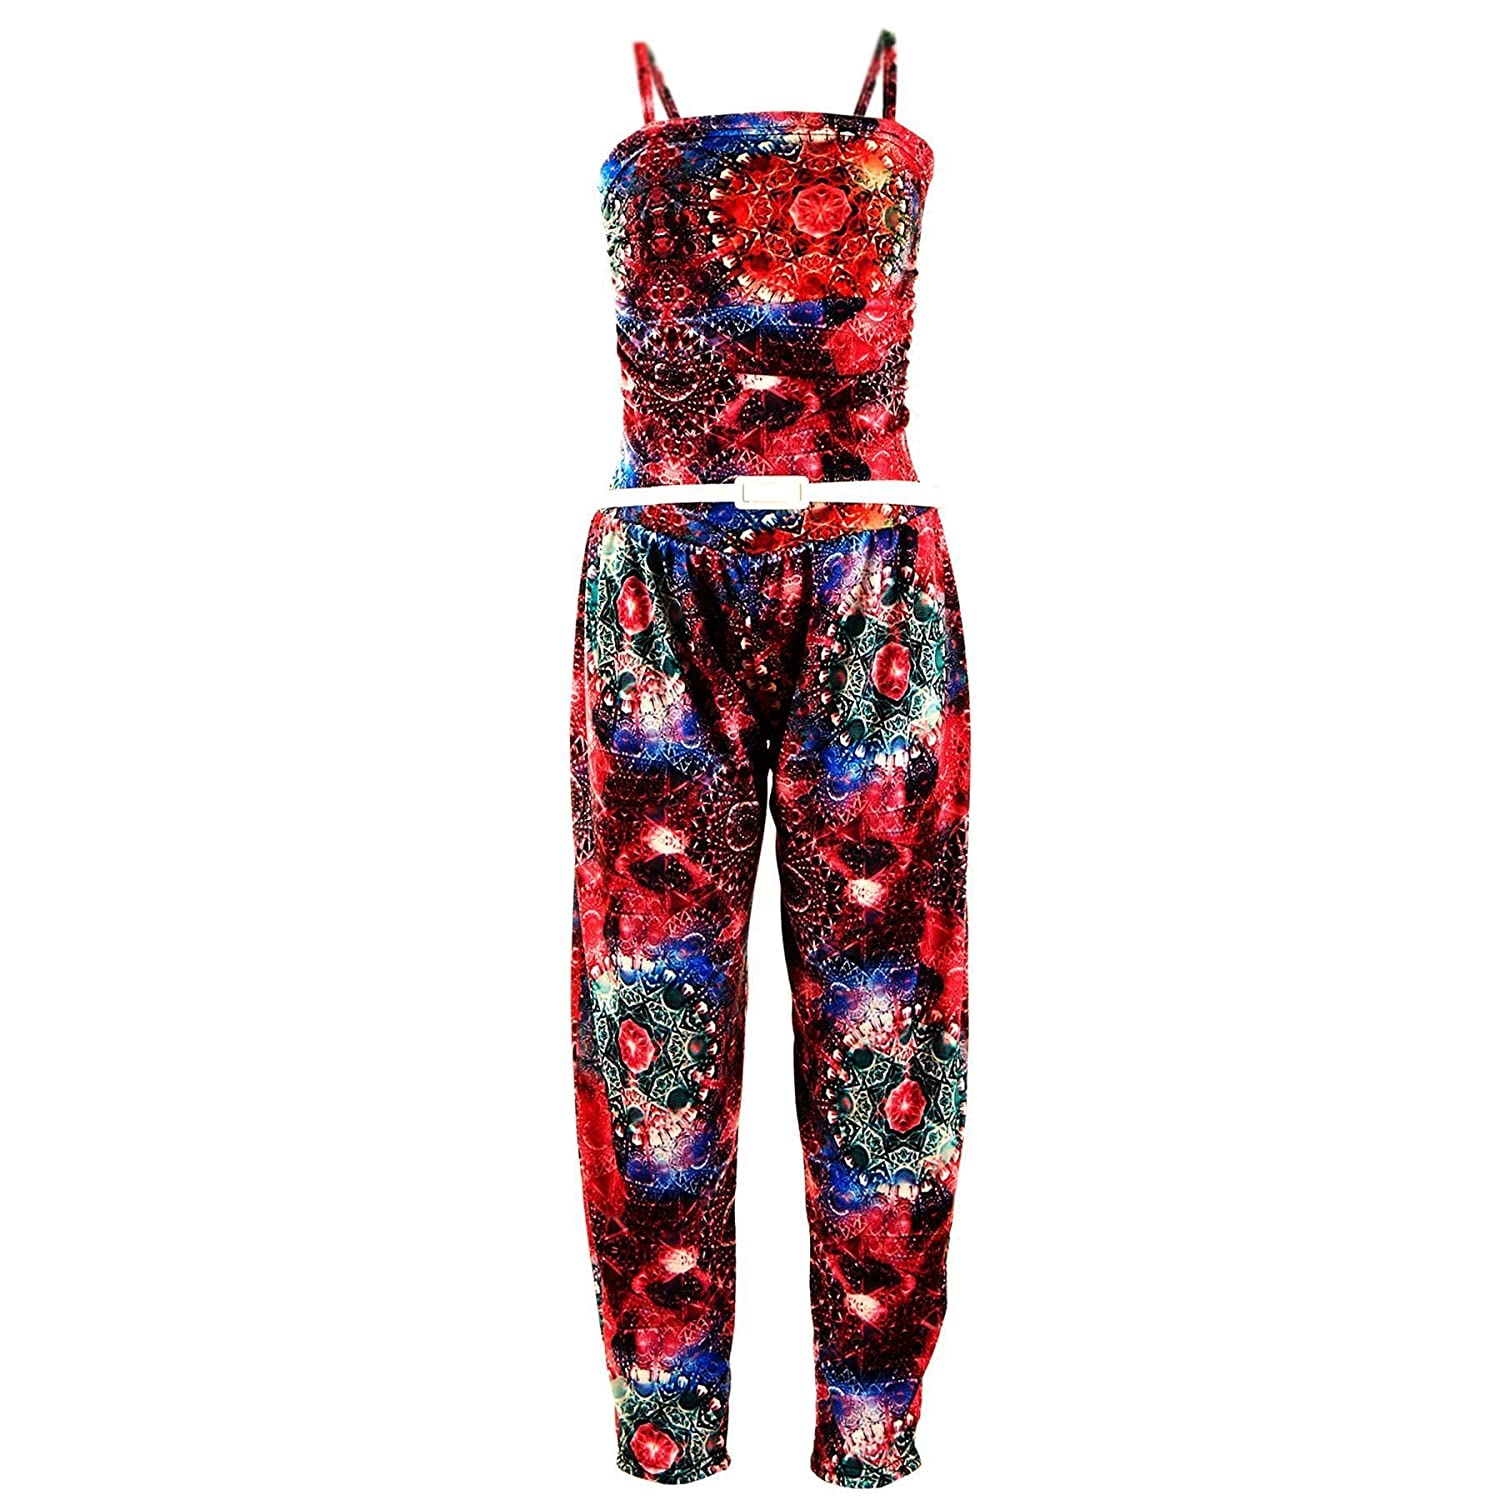 Girls Jumpsuit Kids Floral Leopard Aztec Tribal Print Trendy Playsuit All in One